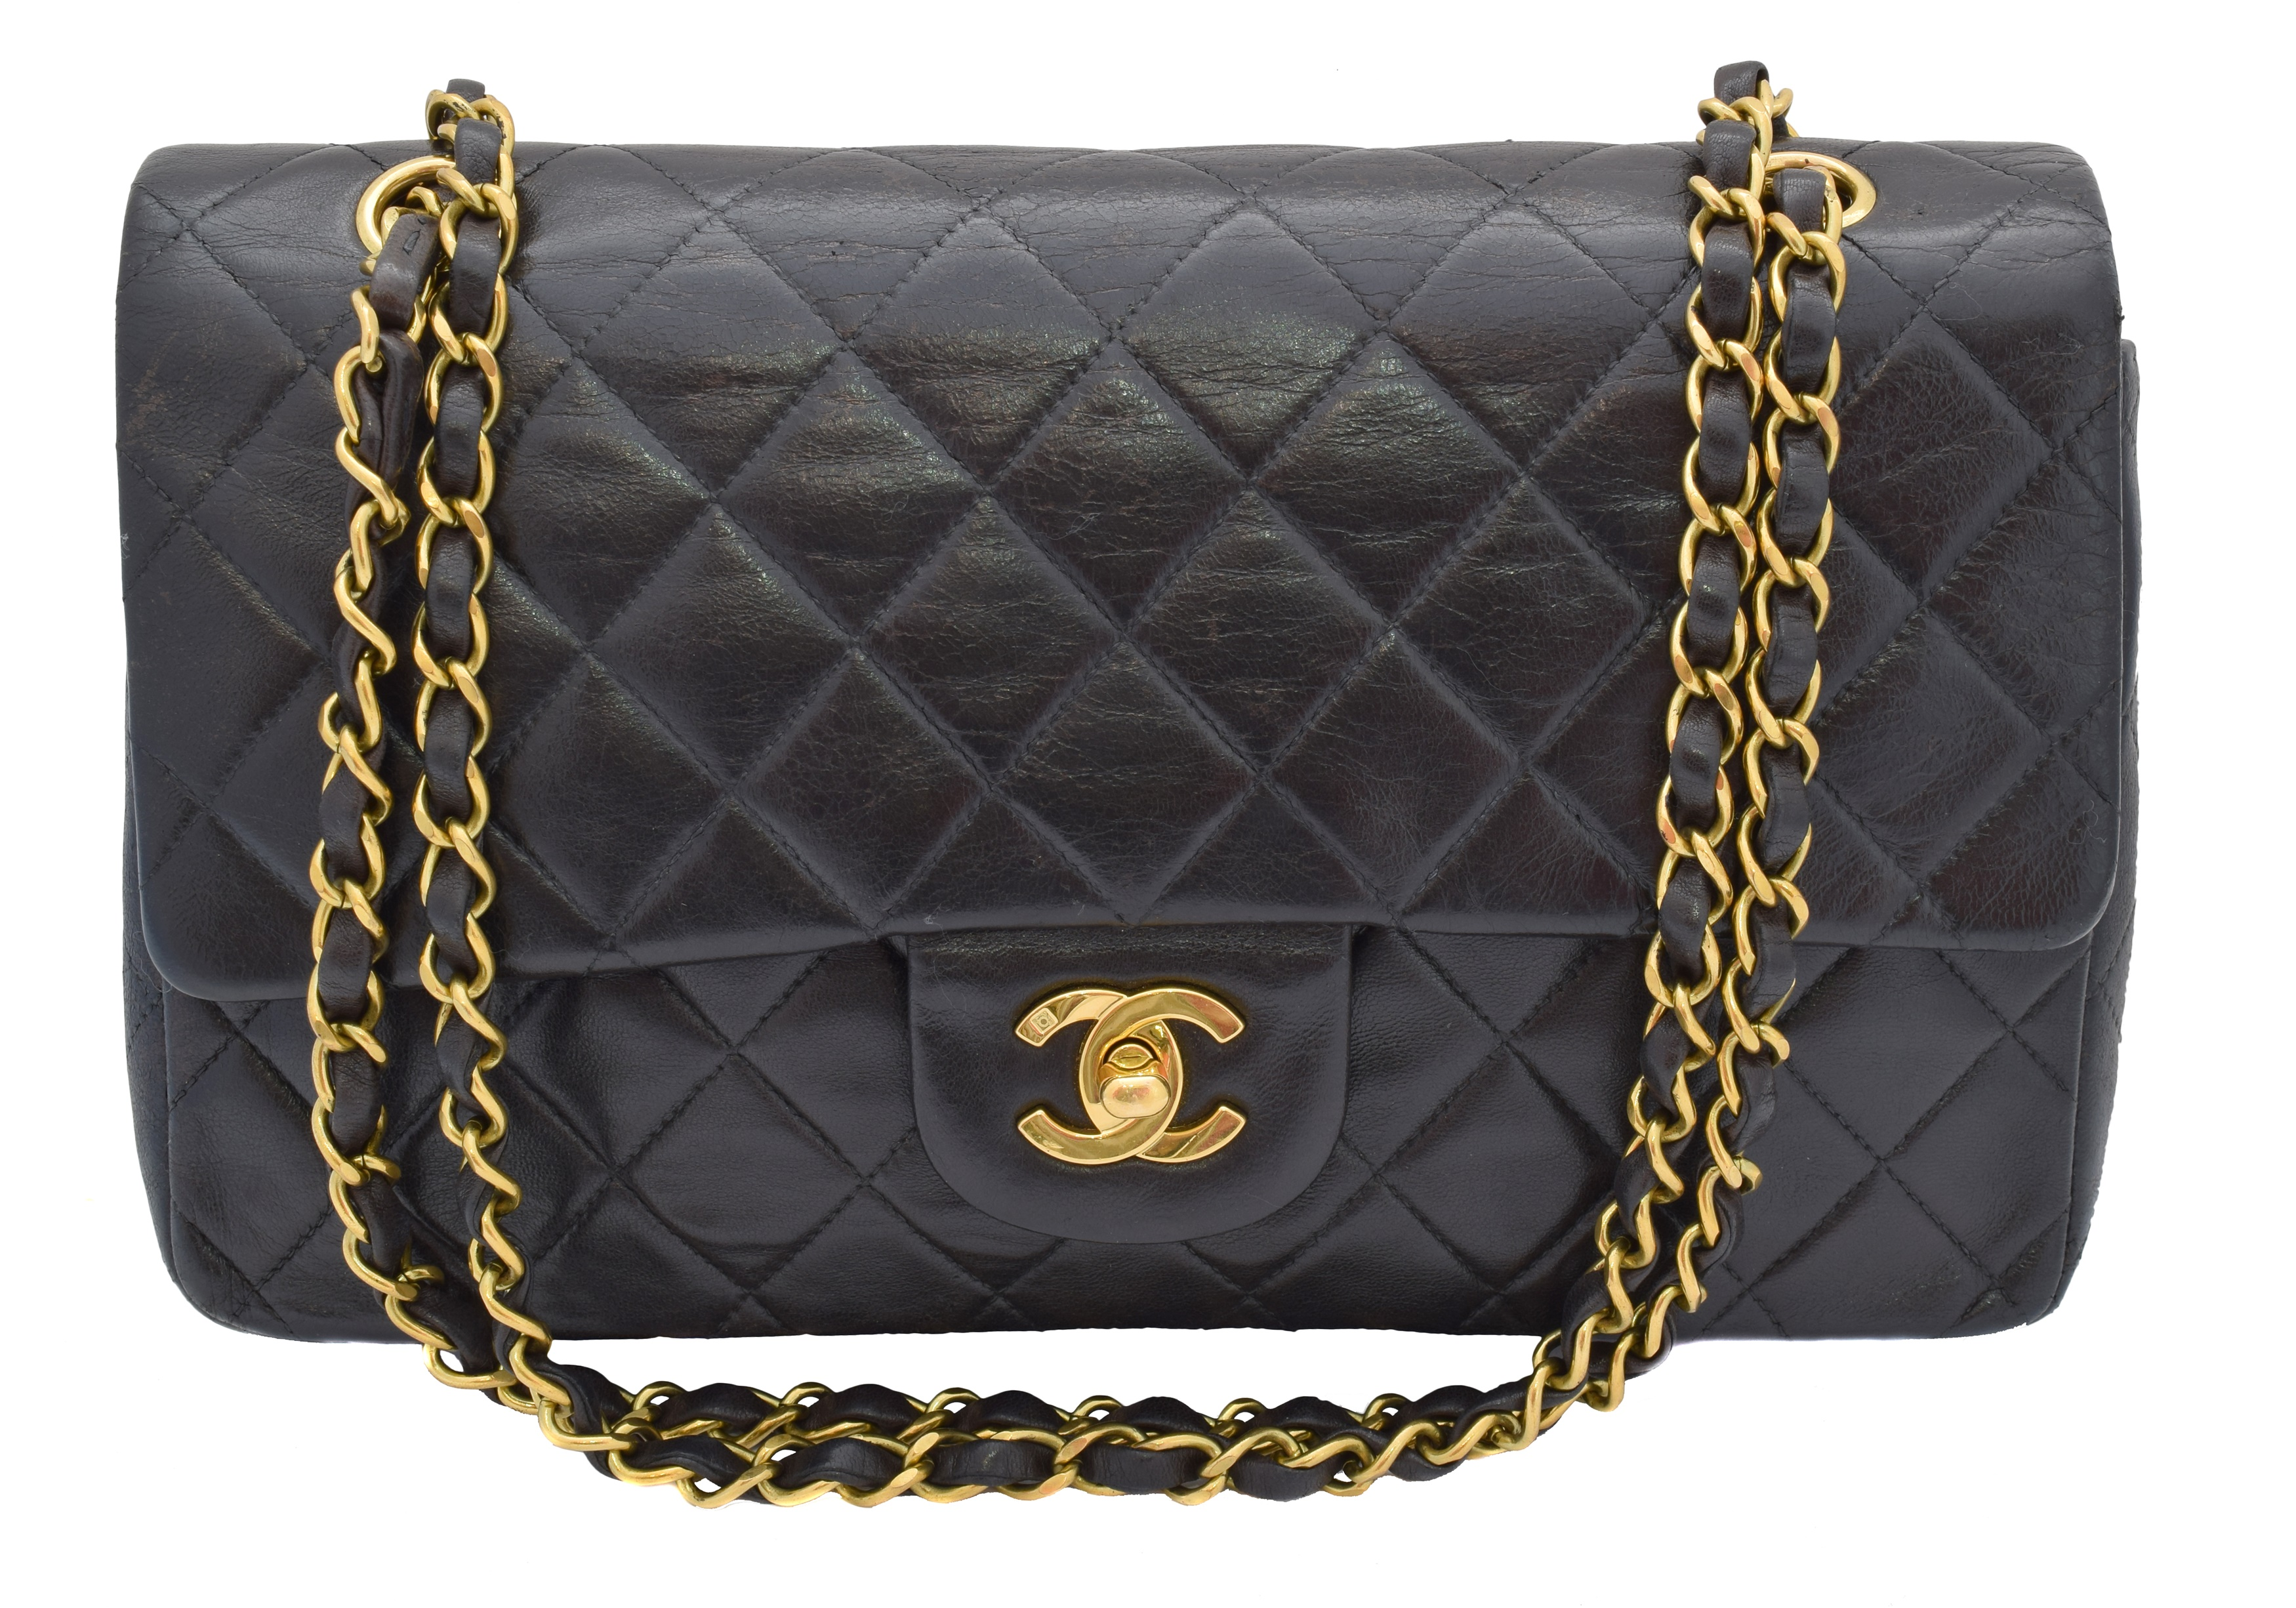 Chanel Classic Double Flap Handbag, c. 1994-1996, sold for £2,400